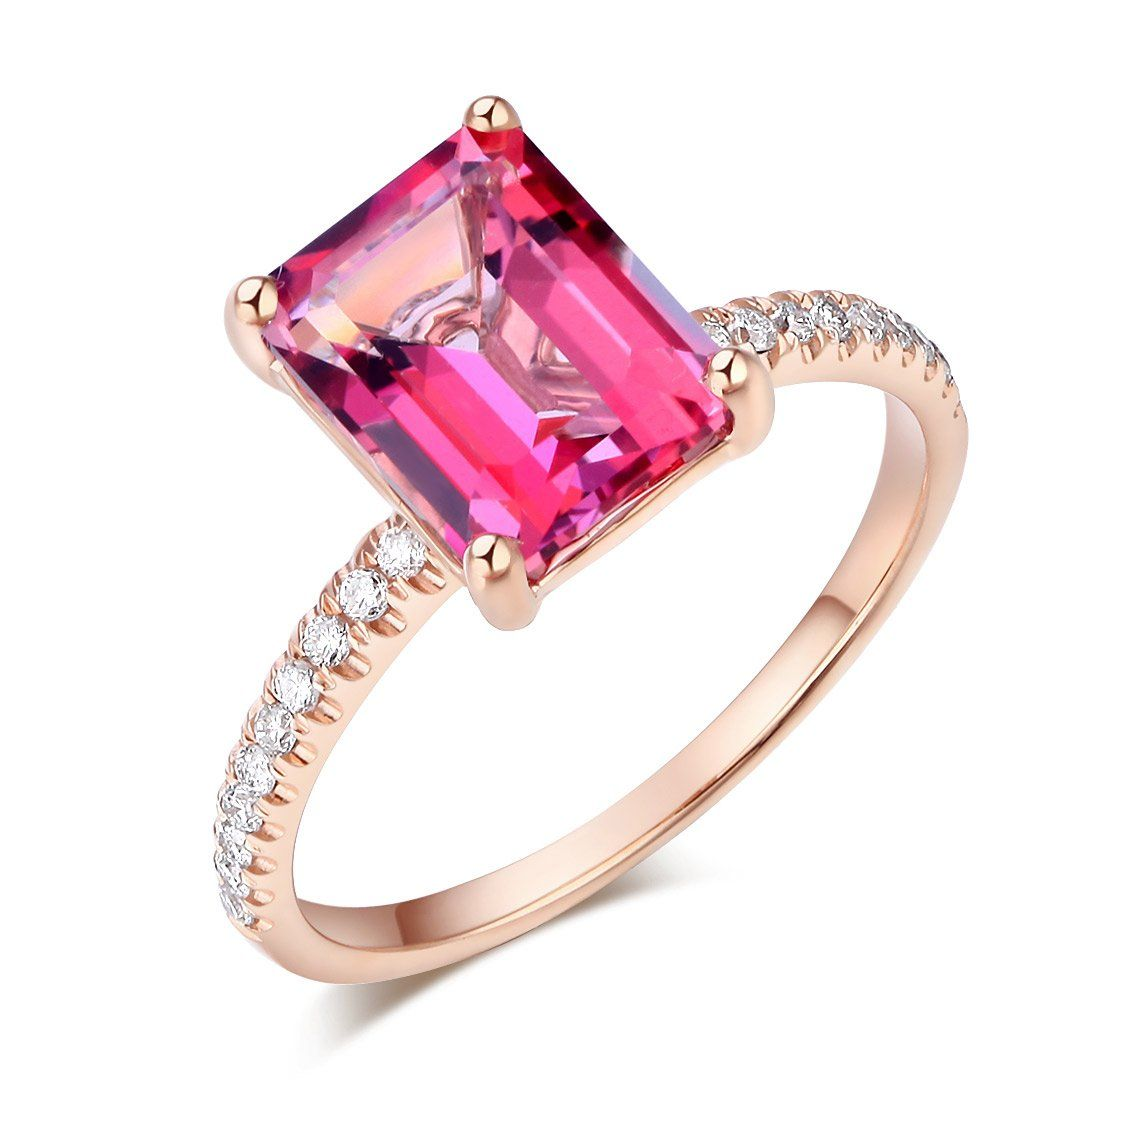 14K Rose Gold Wedding Engagement Ring 2.8 Ct Pink Topaz 0.16 Ct ...